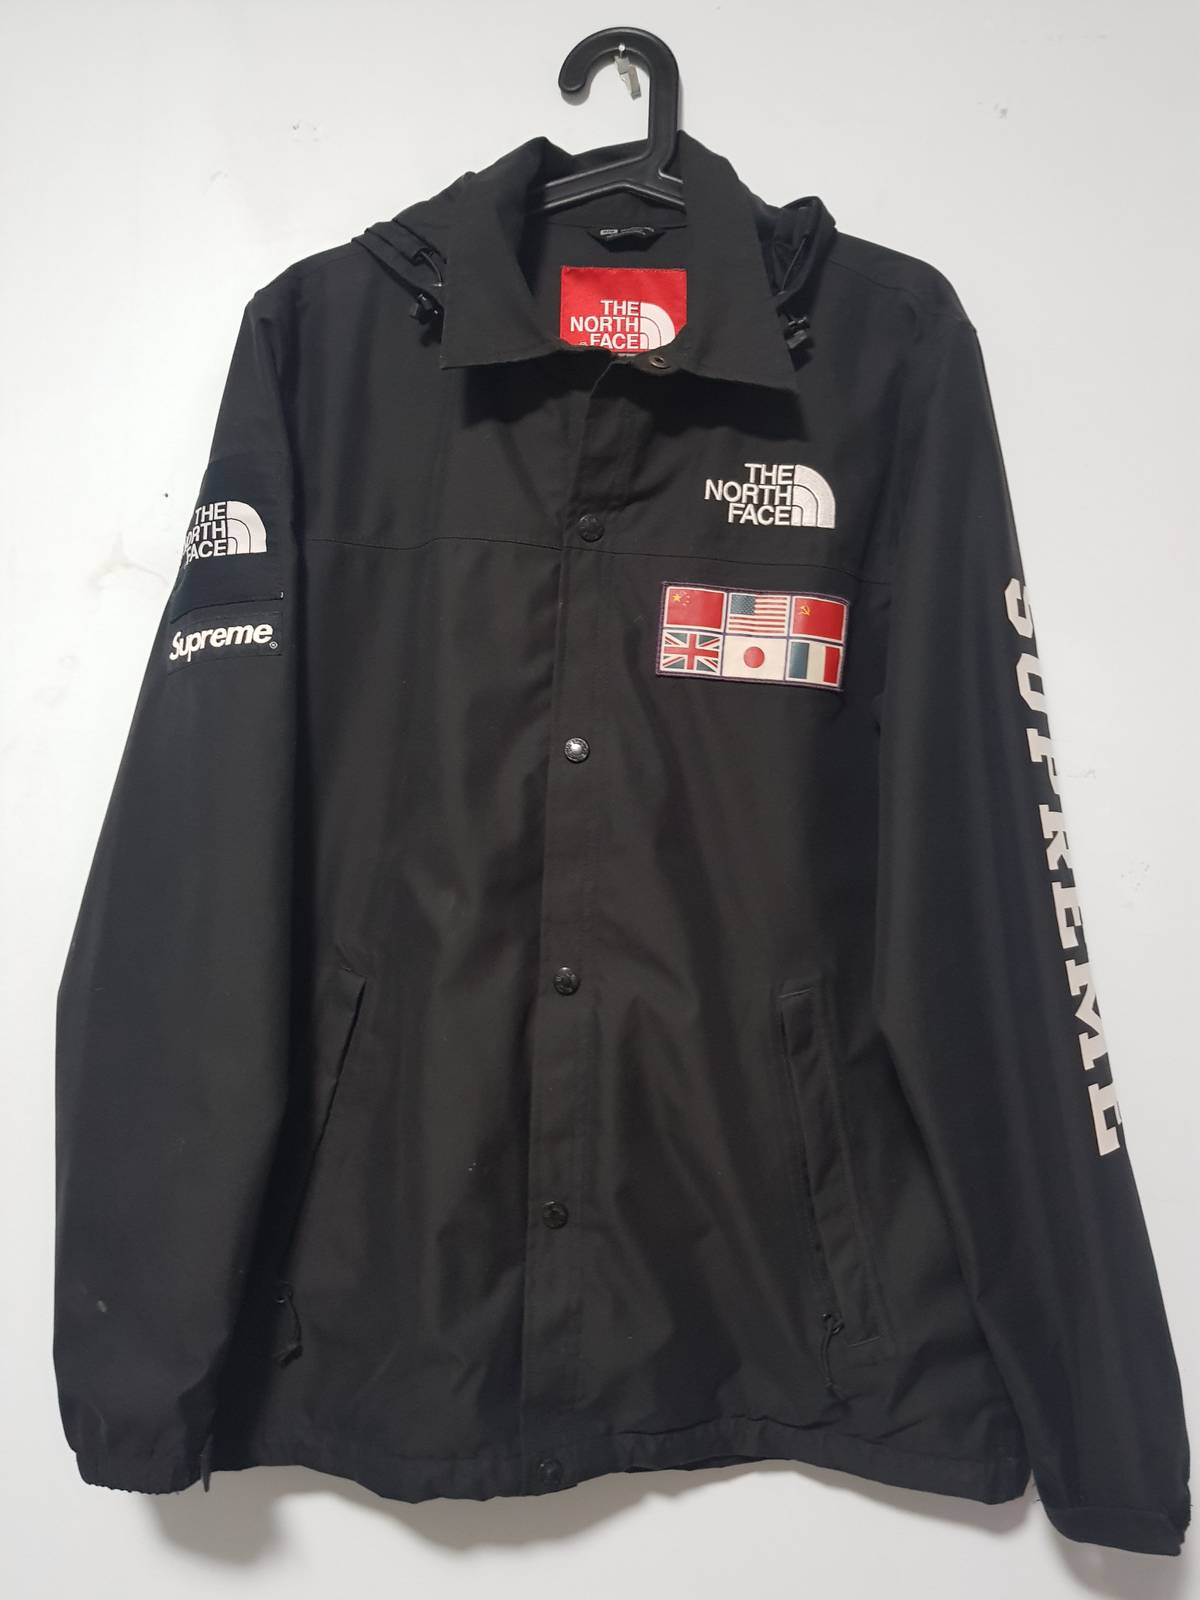 e5576ed85 Supreme × The North Face Supreme X The North Face Expedition Coaches Jacket  Ss14 Map Size M $1350